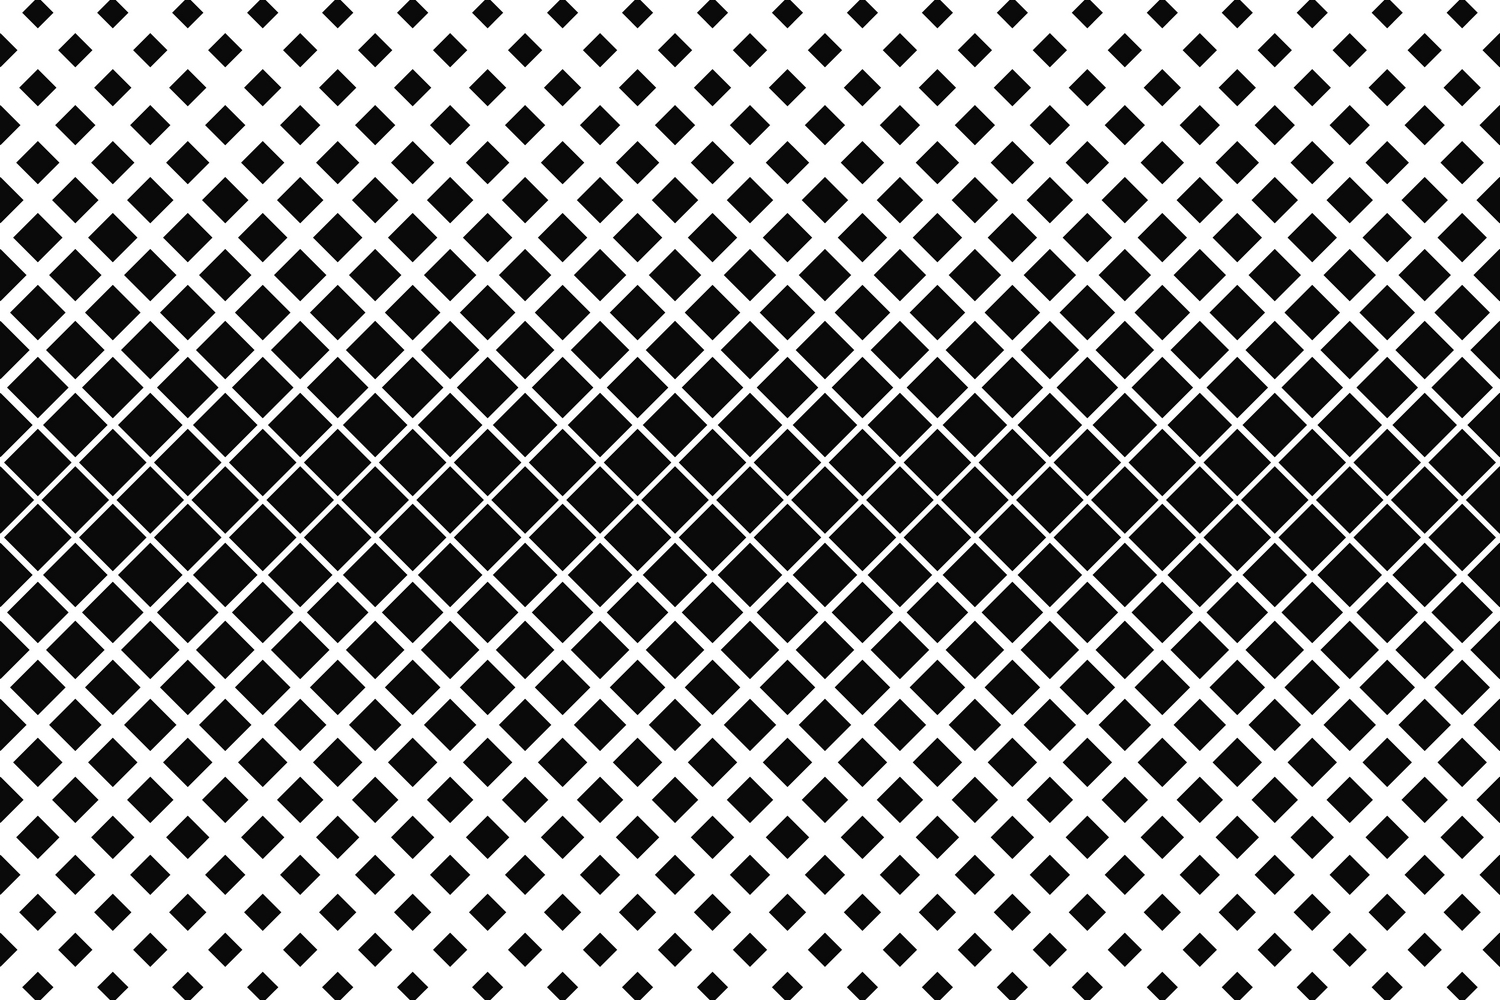 15 square patterns EPS, AI, SVG, JPG 5000x5000 example image 2